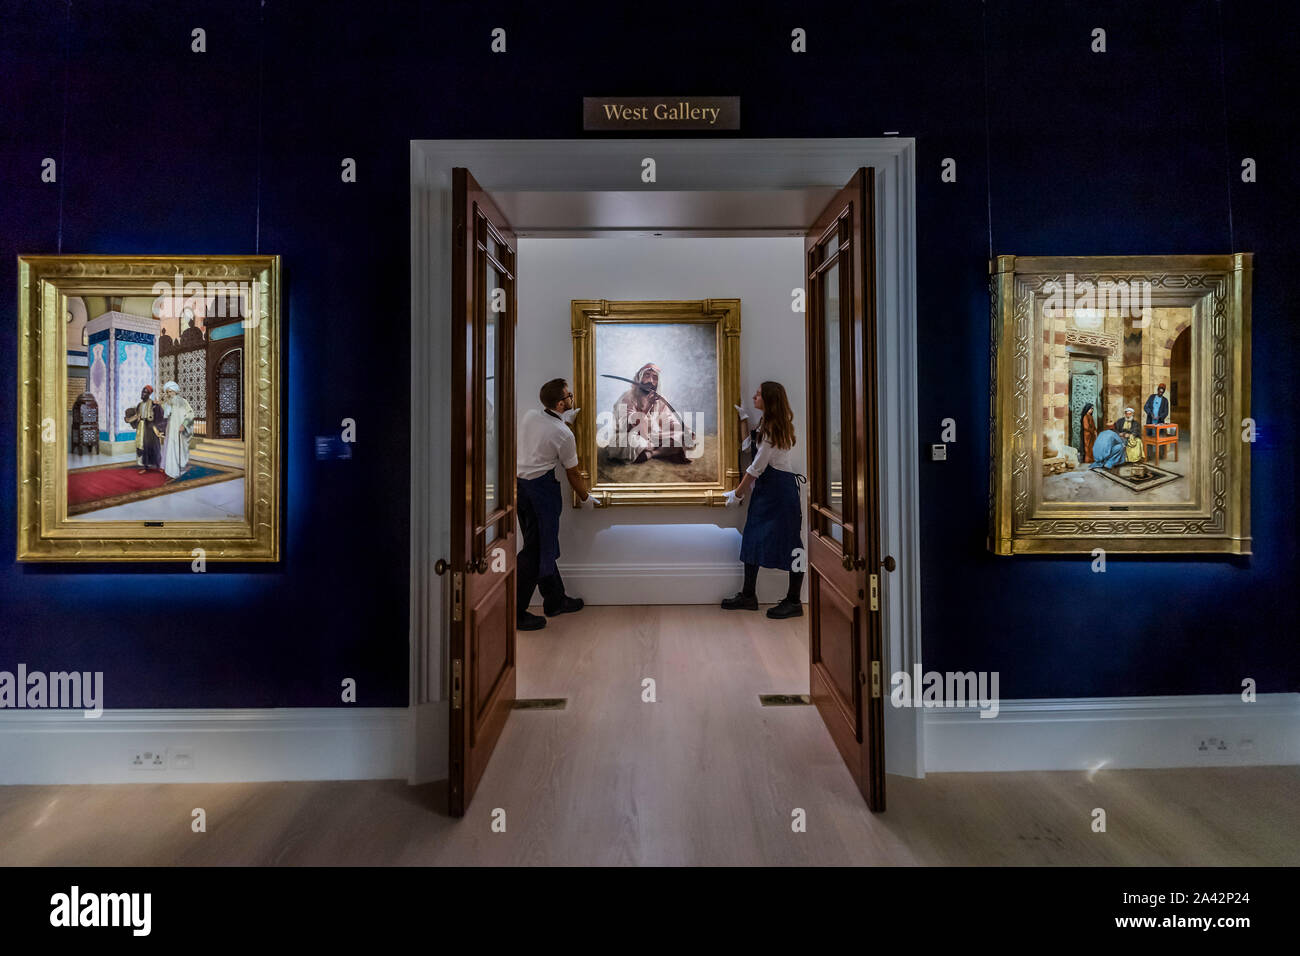 London, UK. 11th Oct 2019. Pictures in the exhibition, but not for sale - Sotheby's Offer 40 Works from the Legendary Najd Collection in a Dedicated Auction on the Evening of 22 October 2019. All 155 Paintings, Never-Before-Seen Together as a Group, will be on Public View from 11 – 15 October. Credit: Guy Bell/Alamy Live News Stock Photo